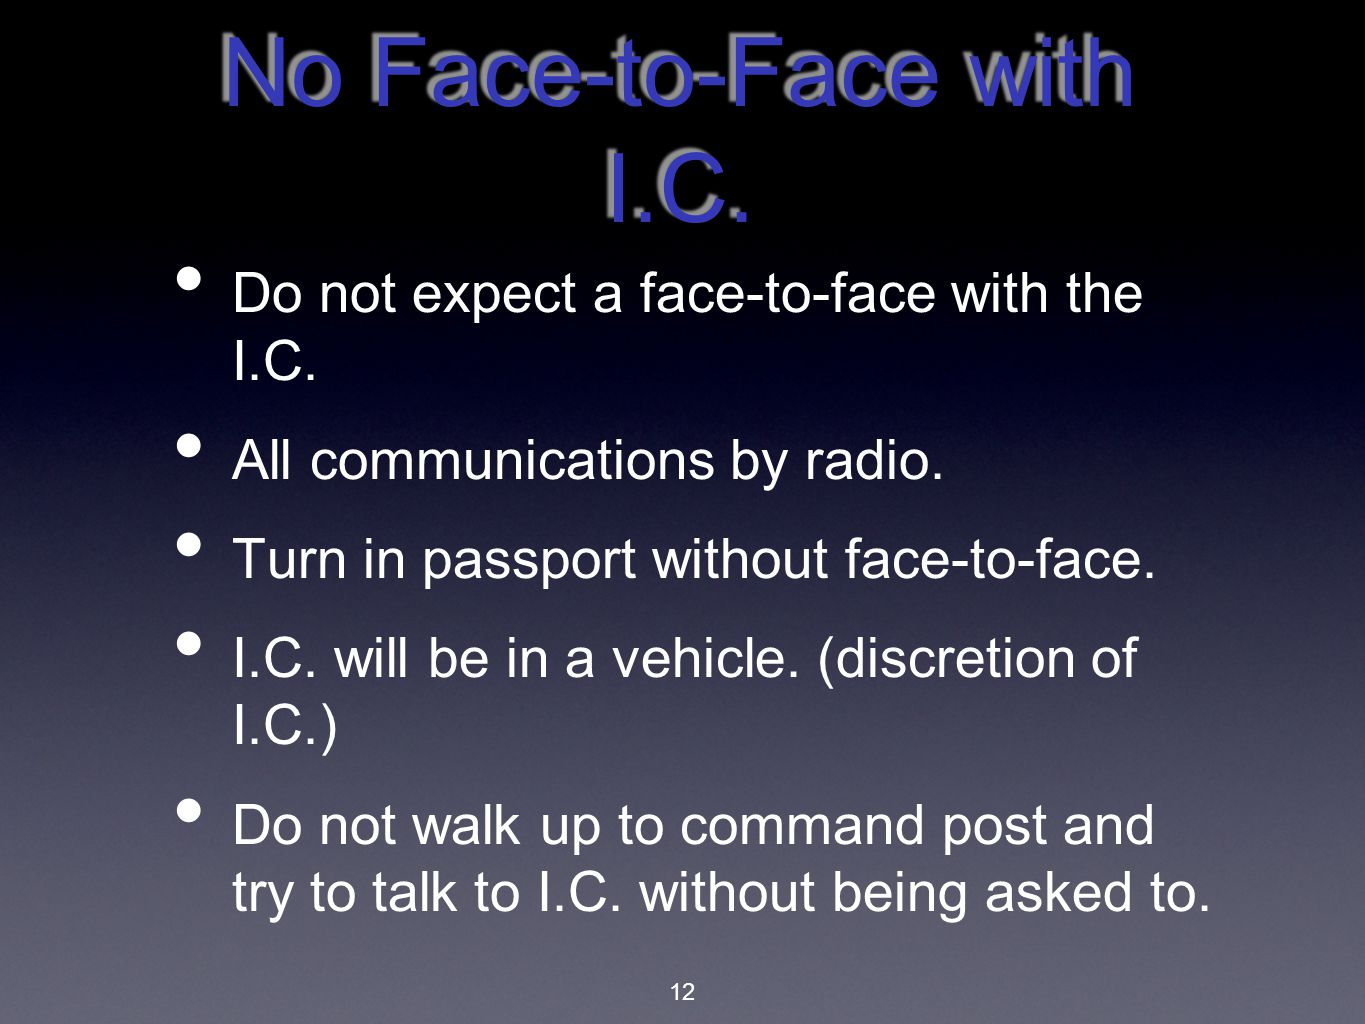 No Face-to-Face with I.C.